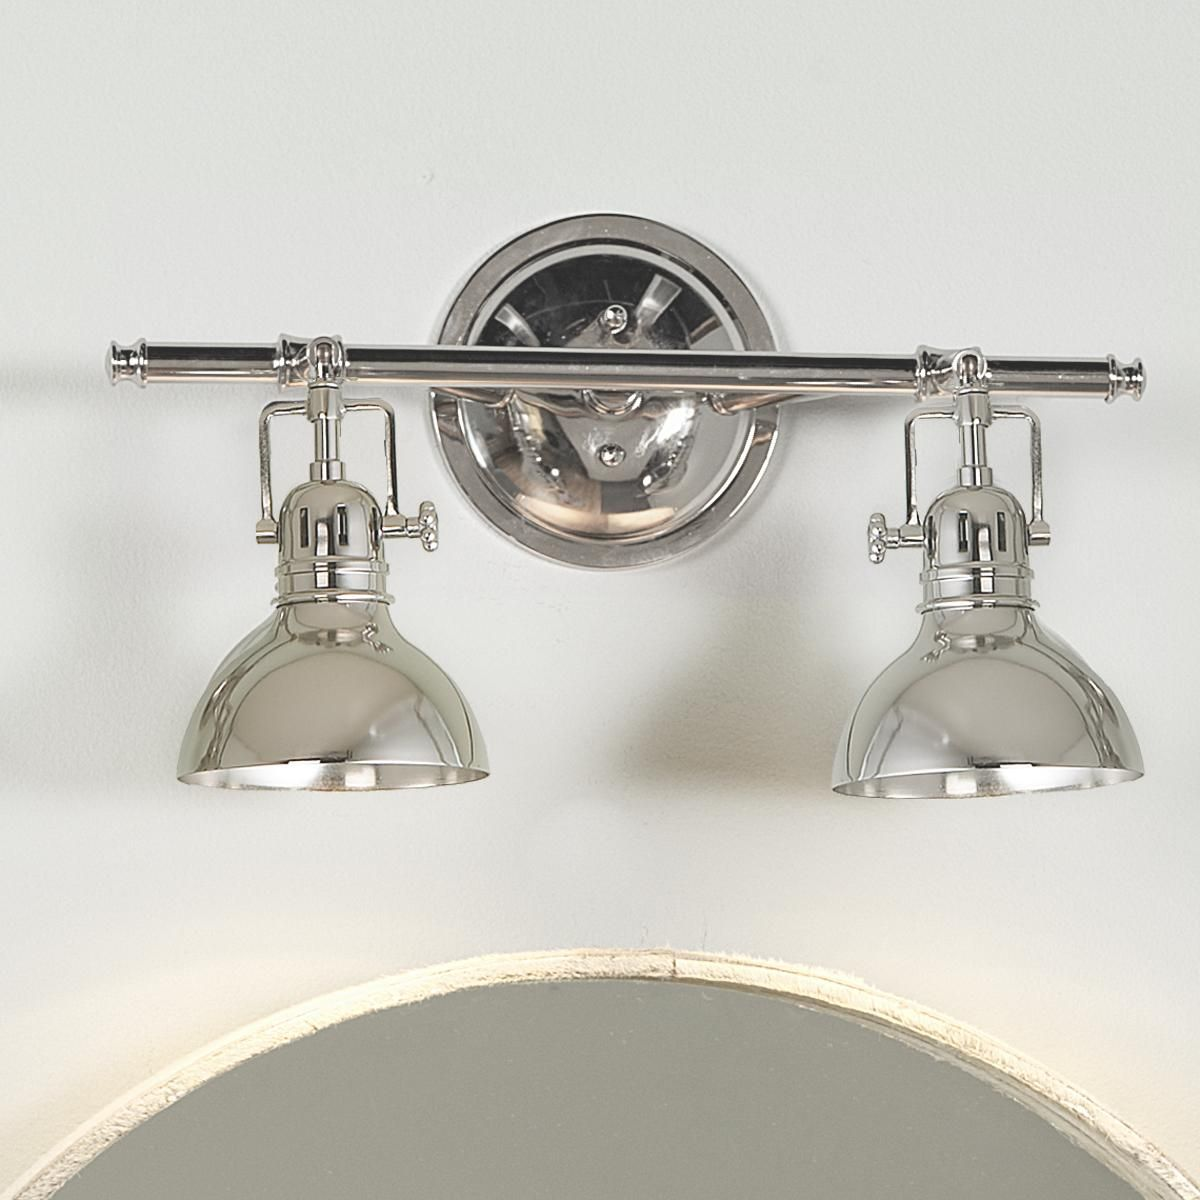 Bathroom Vanity 3 Light Fixture Brushed Nickel Cage Wall Lighting Allen Roth: More Bath Light, Bath And Polished Nickel Ideas